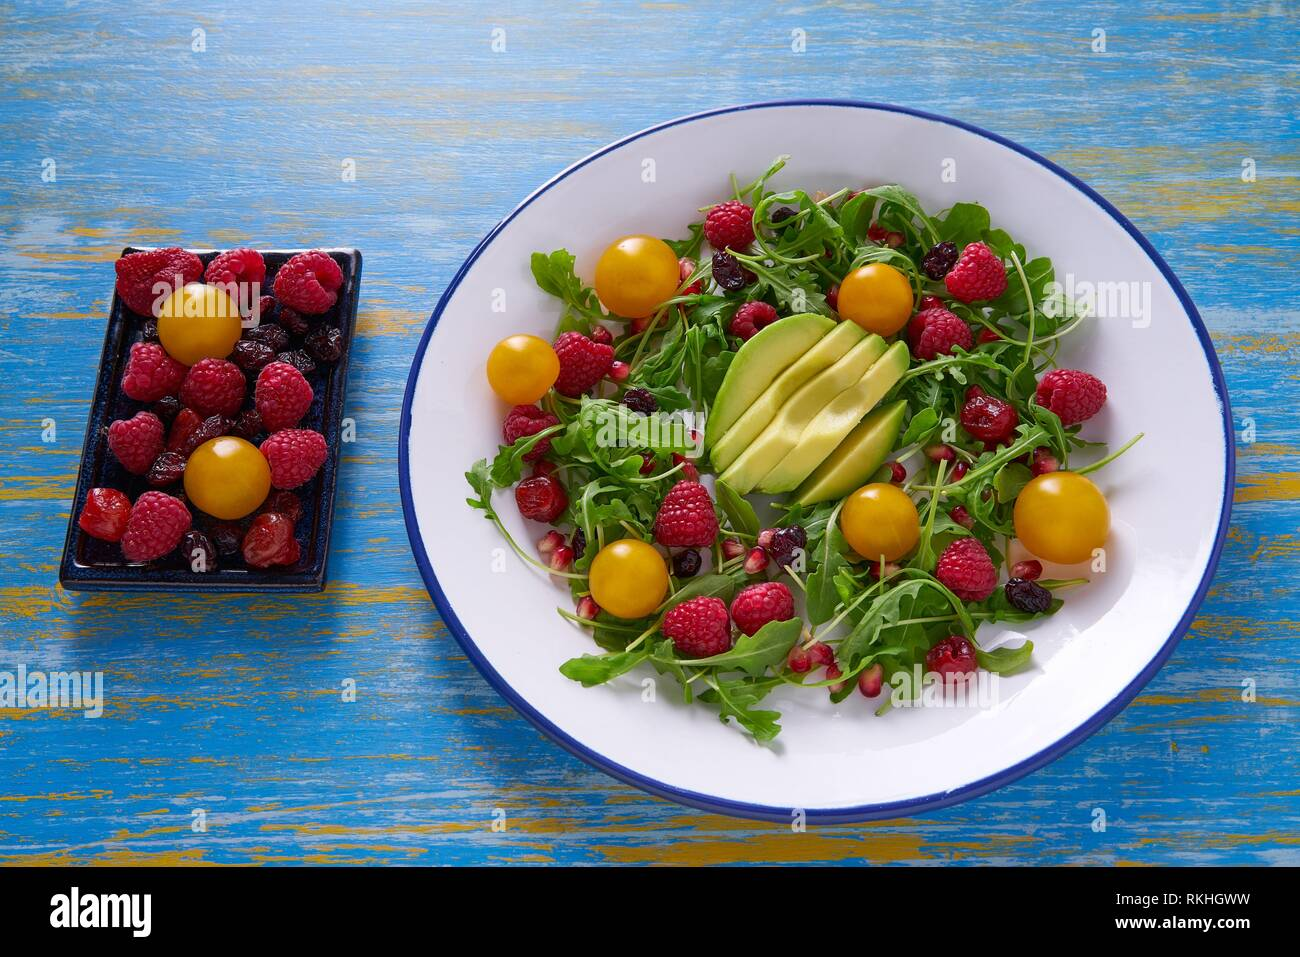 Avocado and berries salad with arugula and yellow cherry tomatoes. Stock Photo